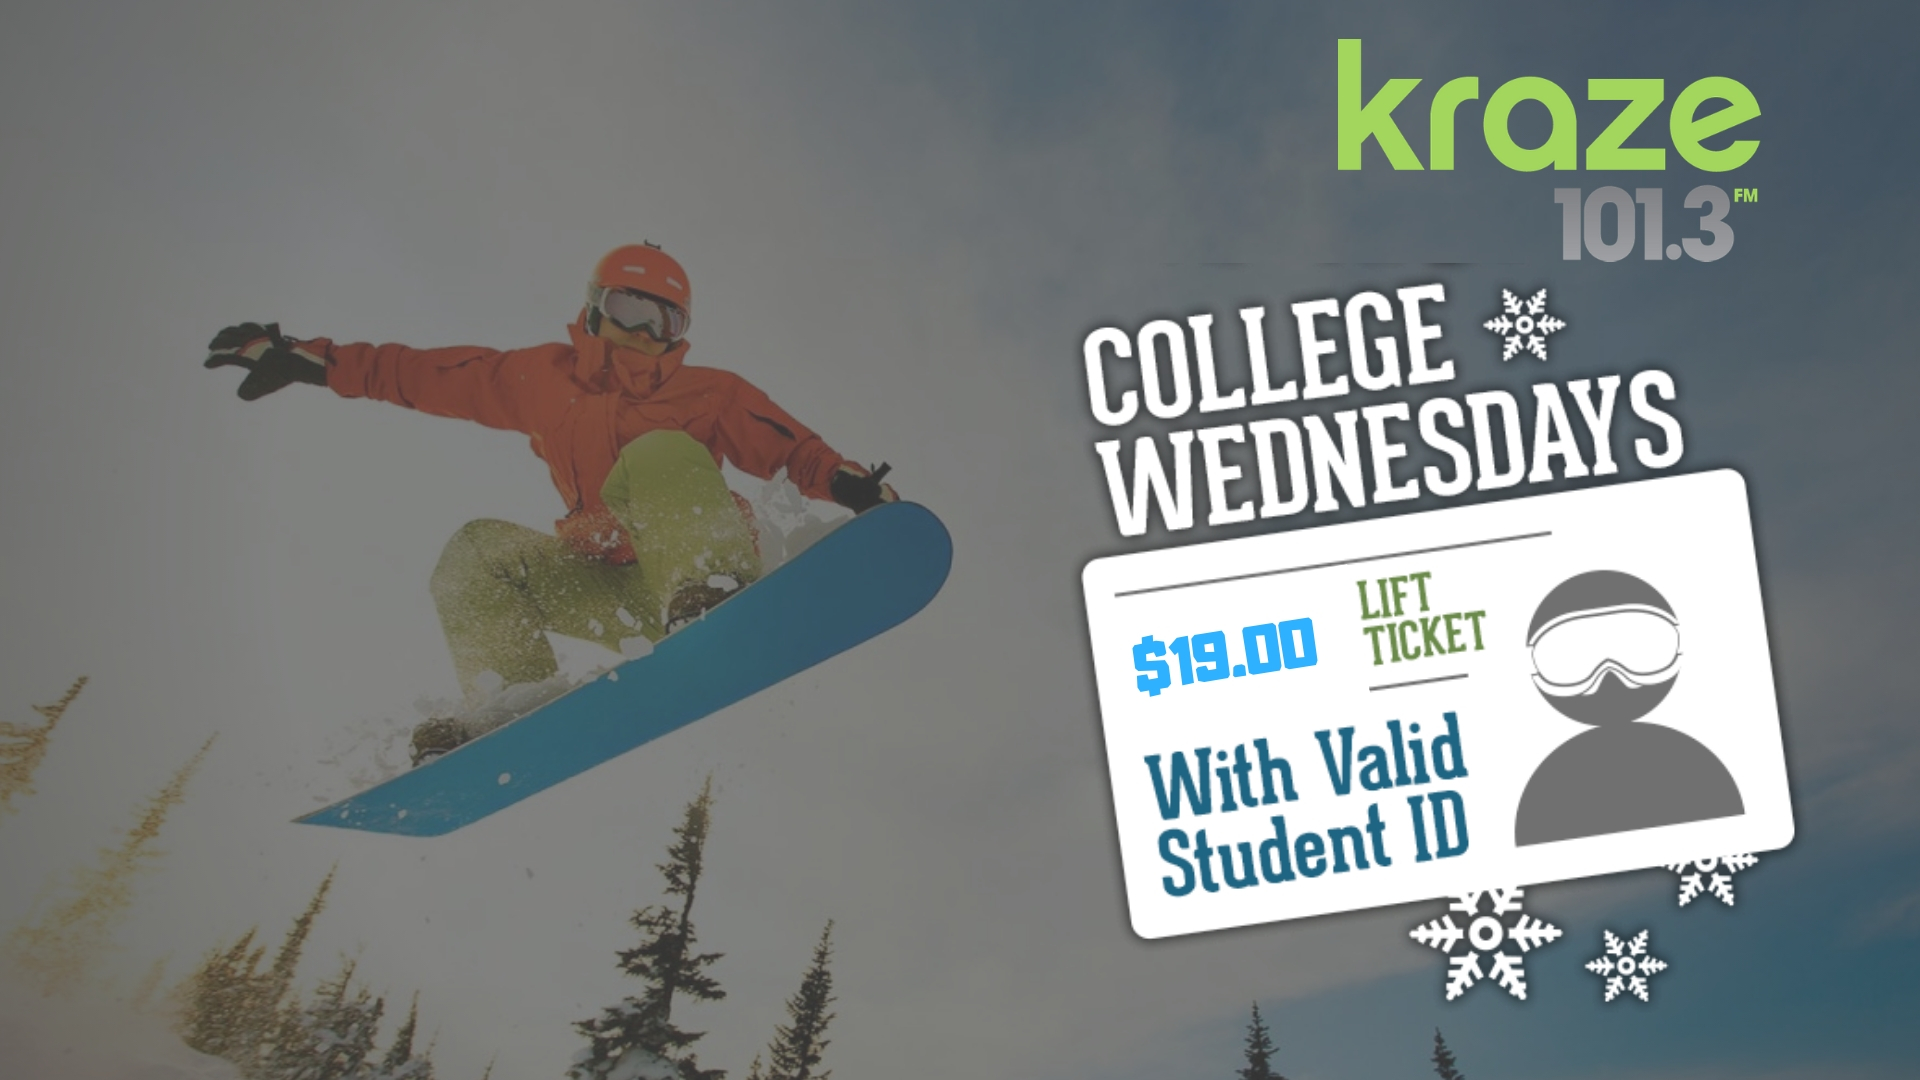 Kraze College Wed - $17.50 with college id